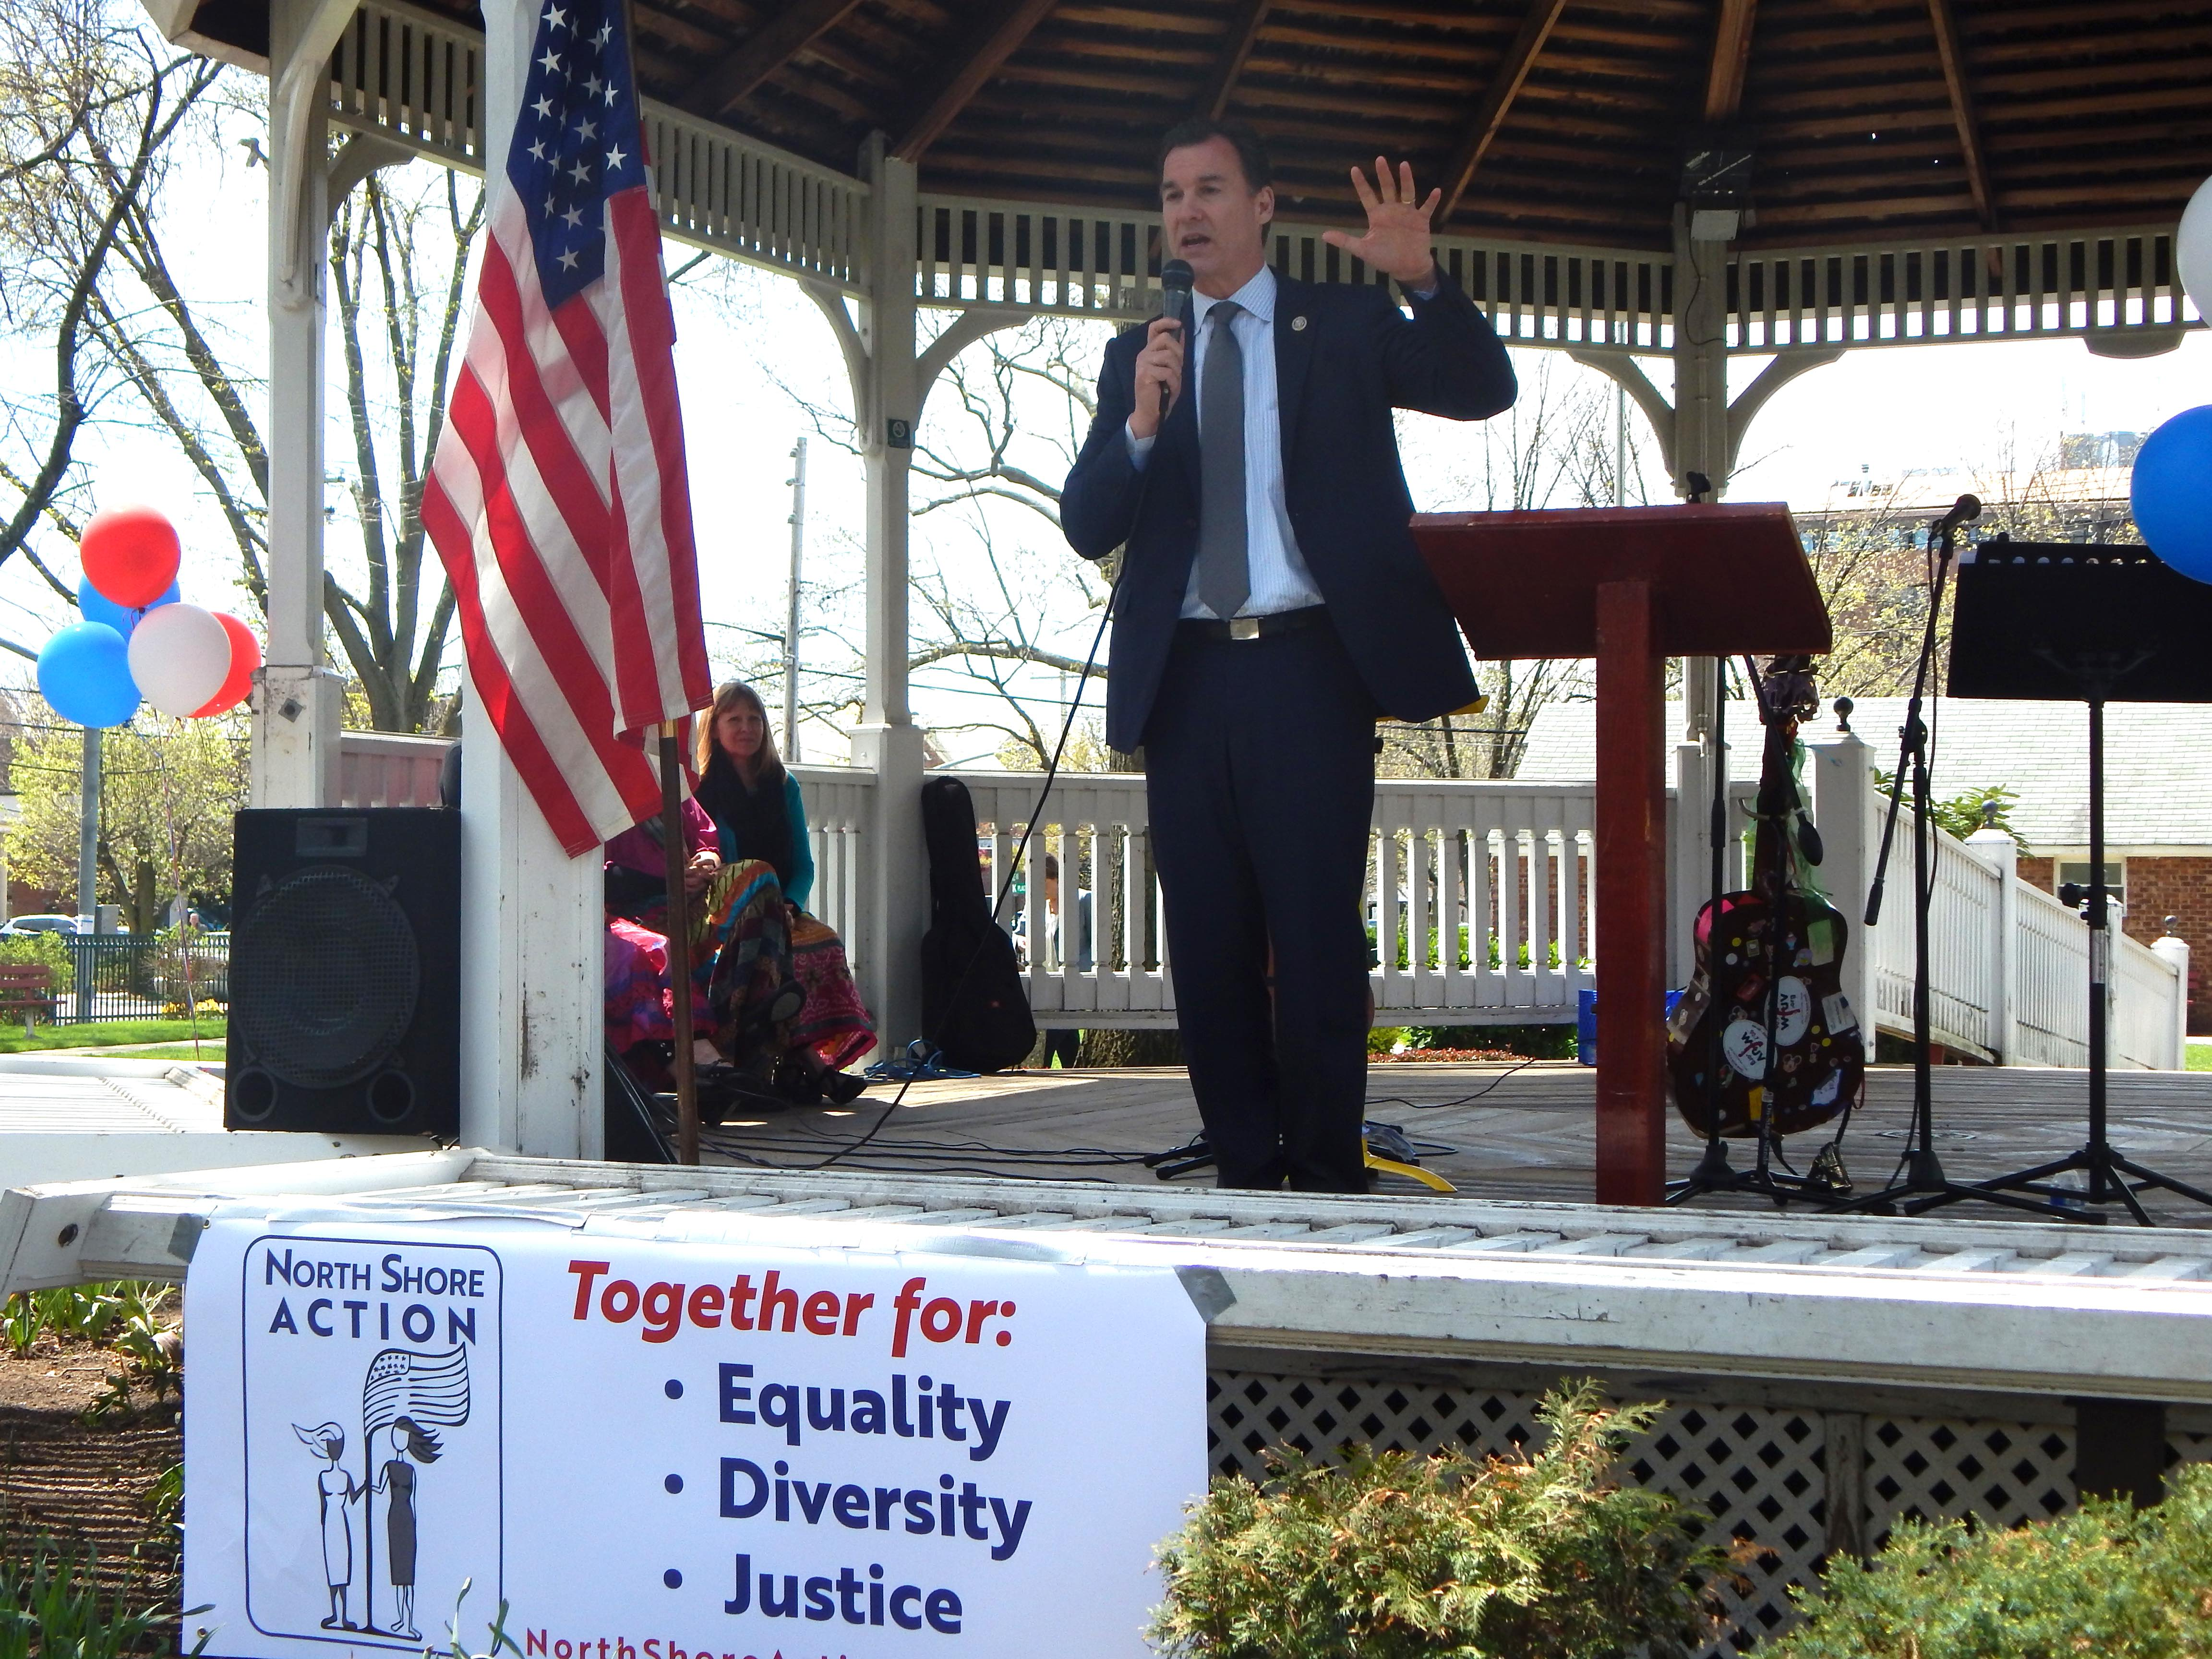 U.S. Rep. Tom Suozzi (D-Glen Cove) speaks at the North Shore Action rally on Great Neck on Sunday, April 23, 2017. (Photo by Kristy O'Connell)